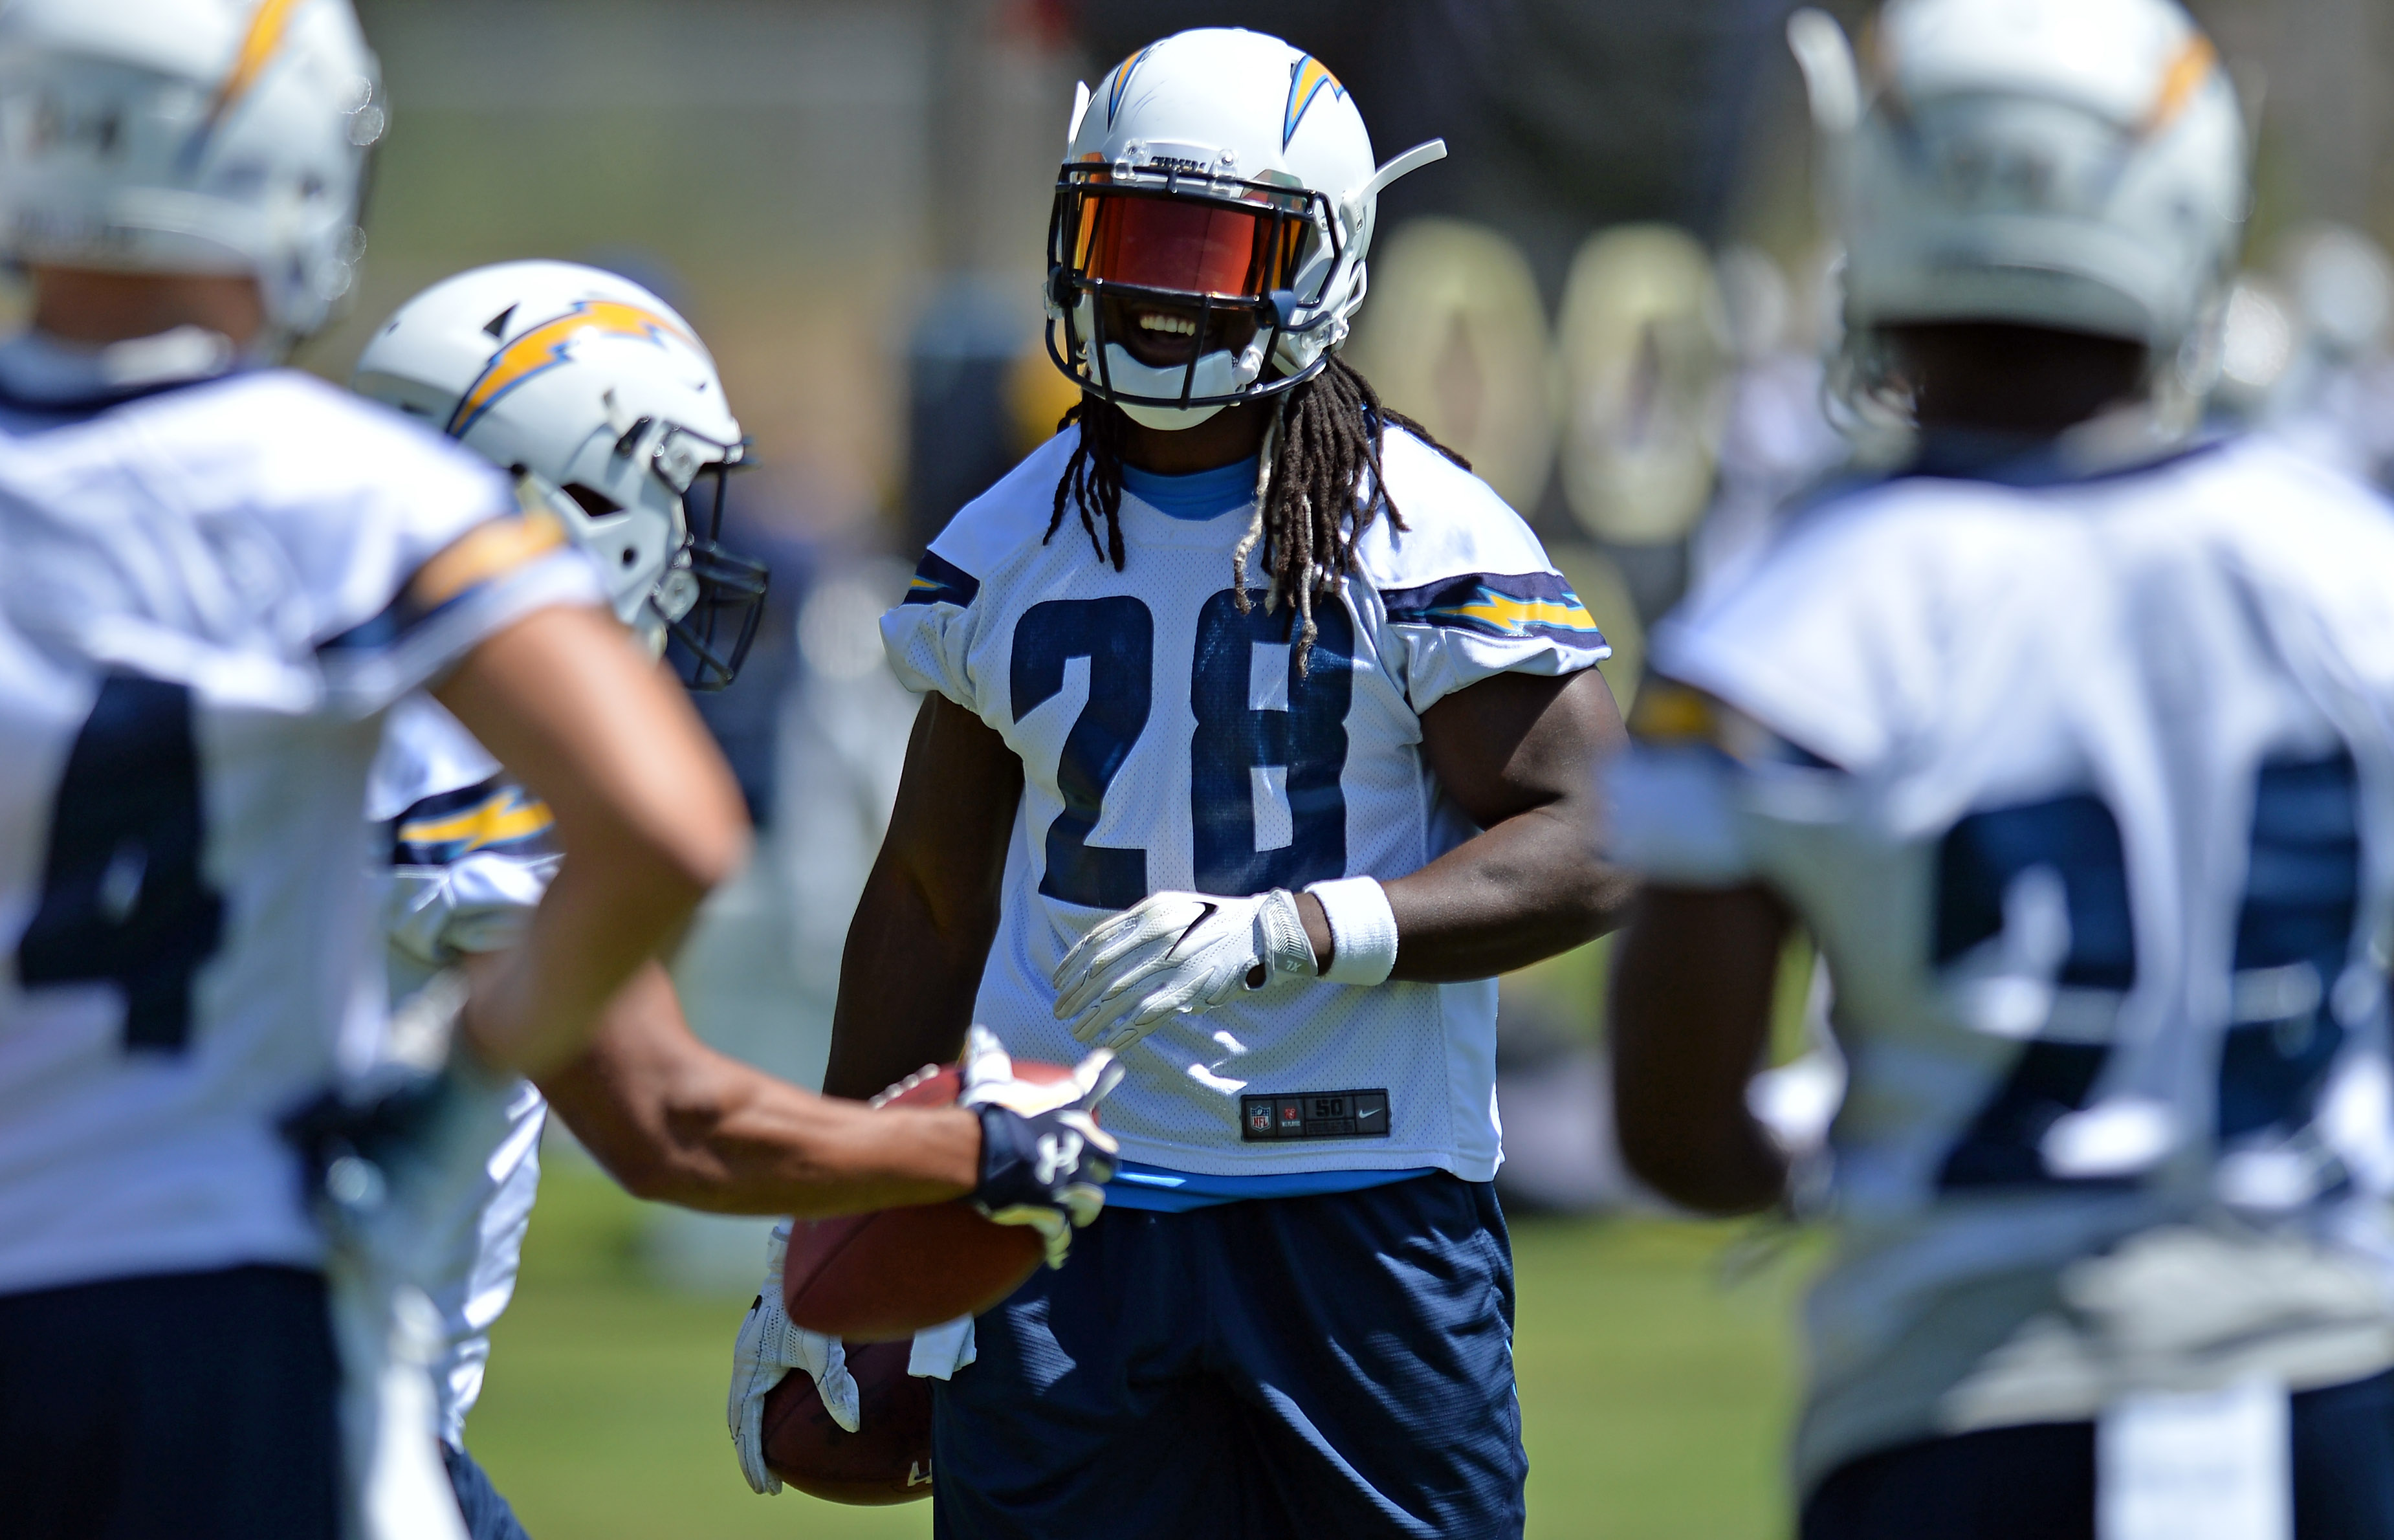 f1478d470 Melvin Gordon Works With Footwork King During Offseason Training .